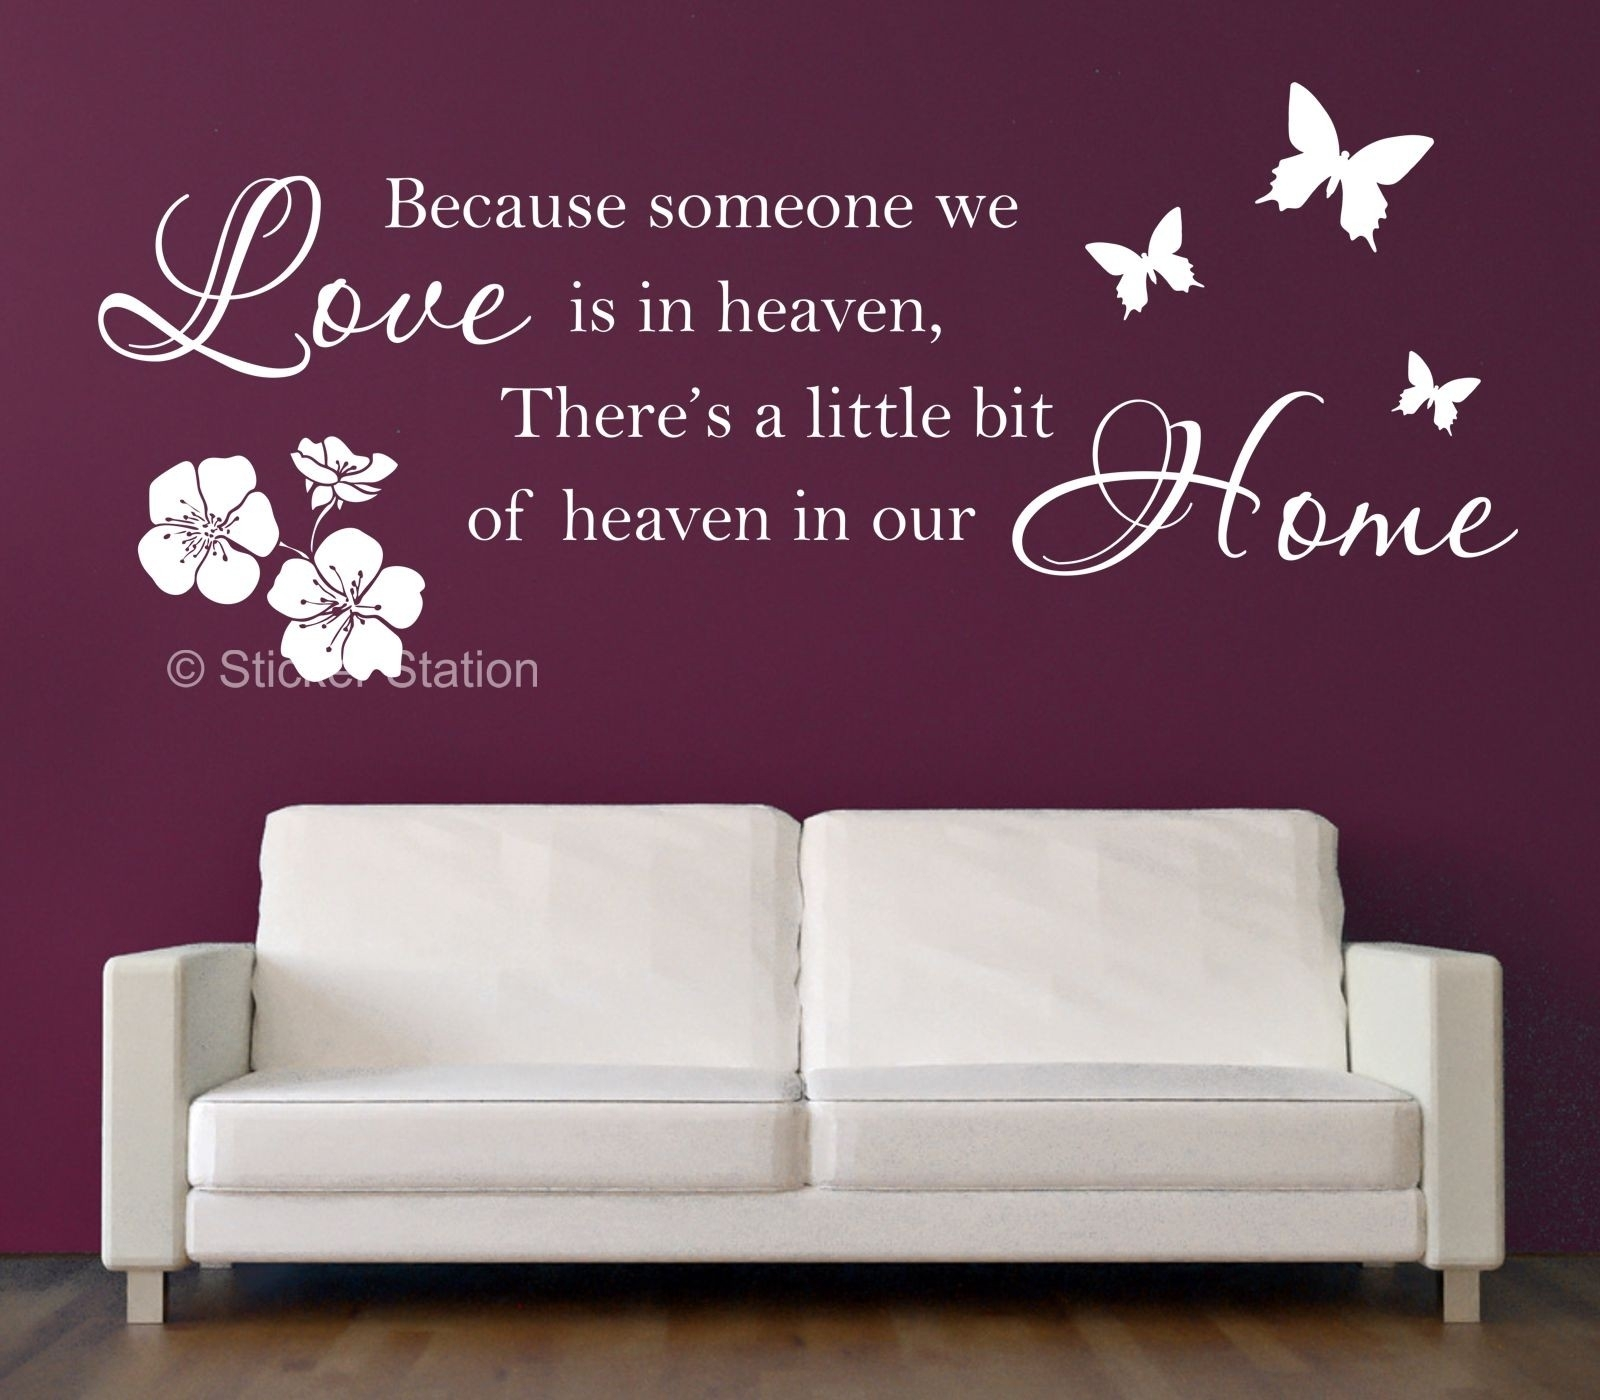 Because Someone We Love Is In Heaven Inspirational Wall Art Sticker Intended For Wall Art Stickers (View 12 of 20)